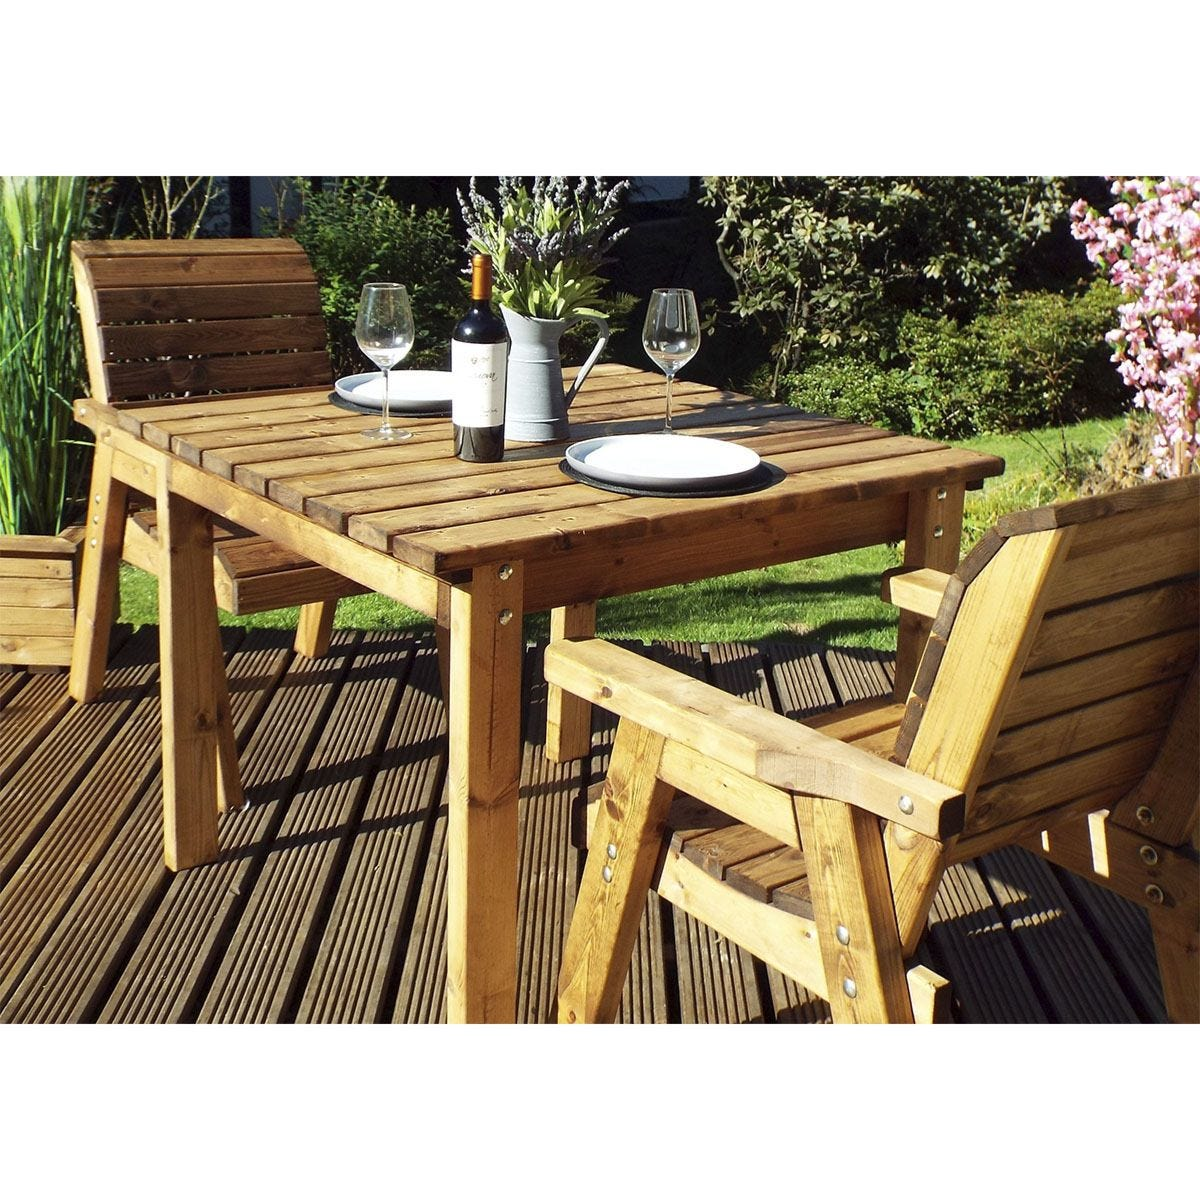 Charles Taylor 2 Seater Square Table Set with Cushions and Storage Bag